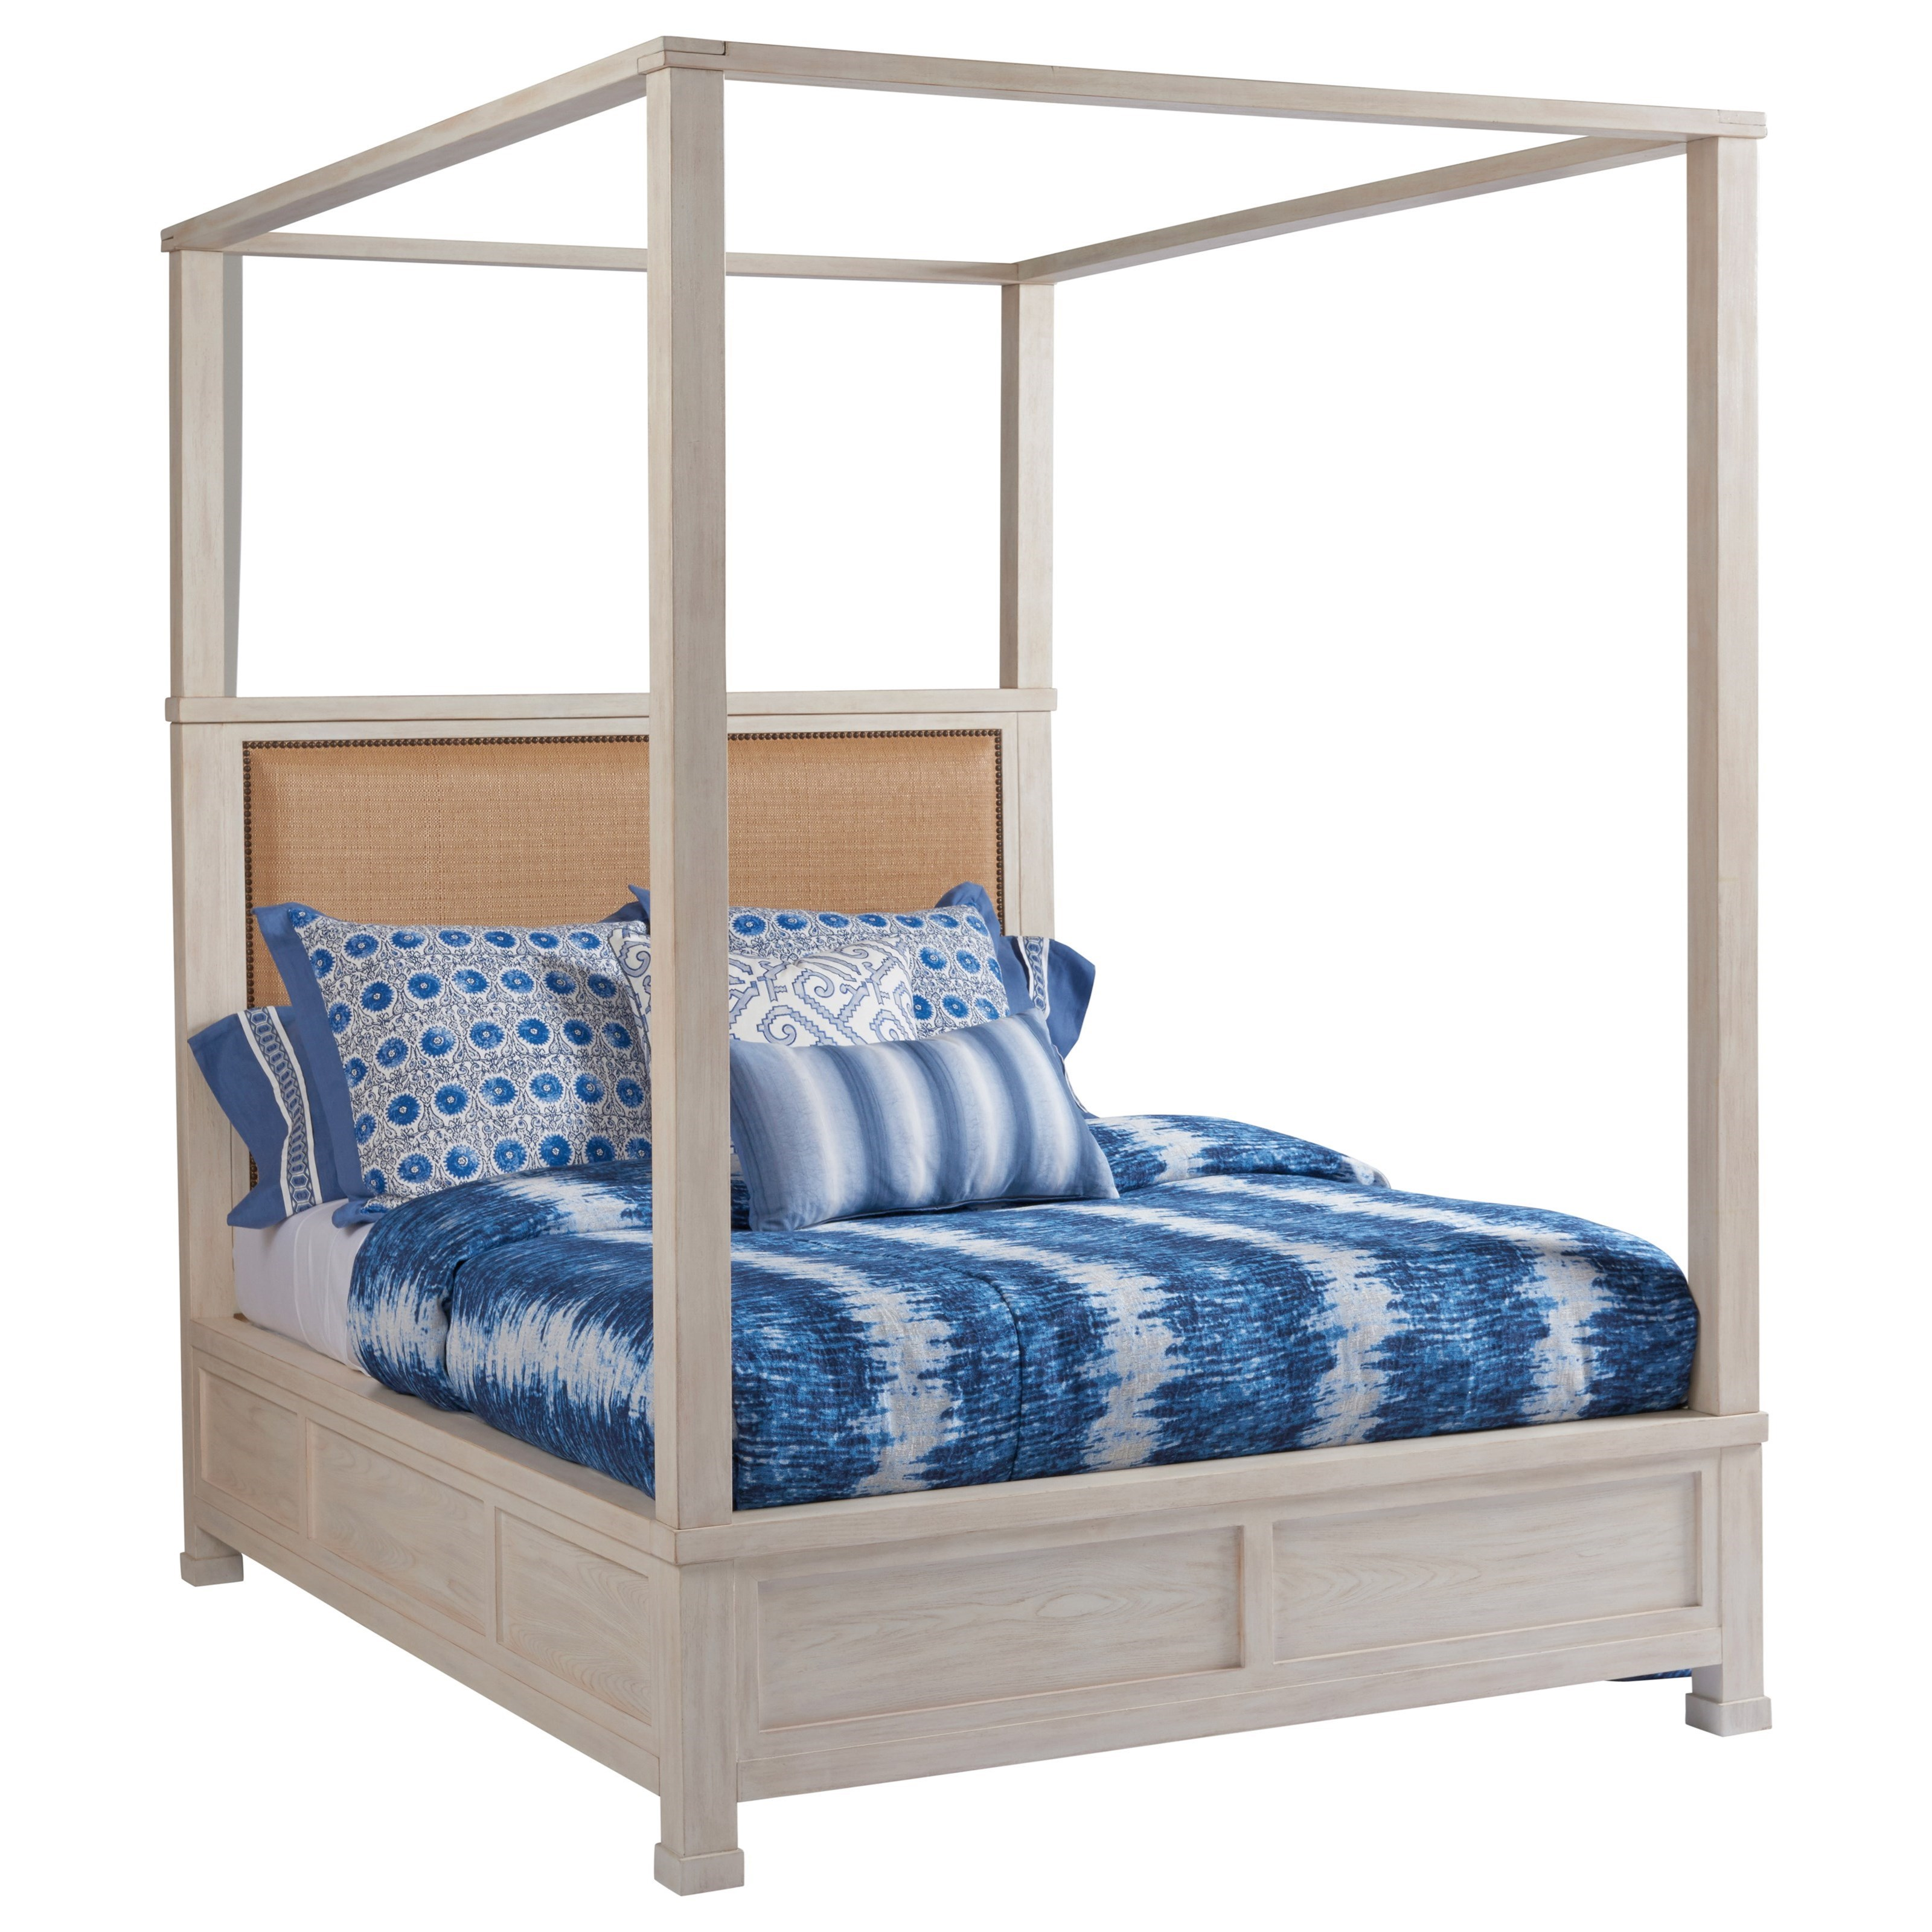 Newport Shorecliff Canopy Bed 6/6 King by Barclay Butera at Baer's Furniture